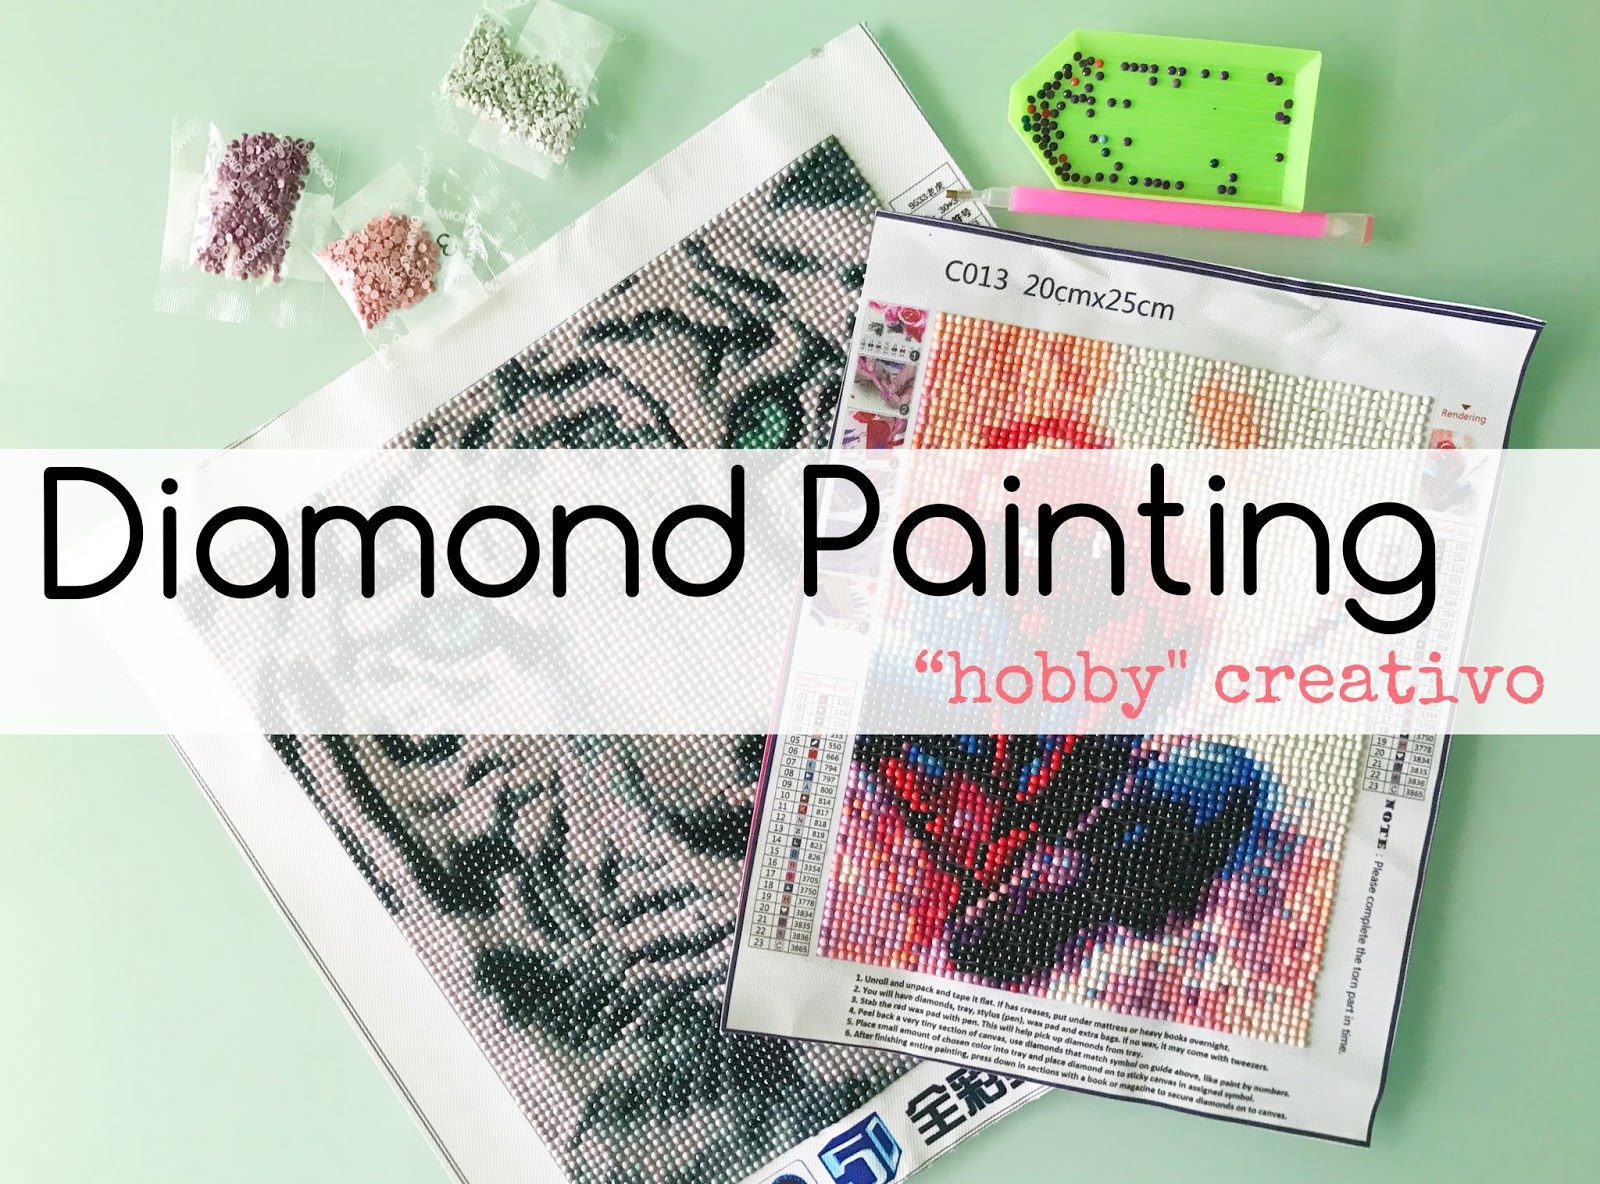 Diamond painting, un hobby creativo